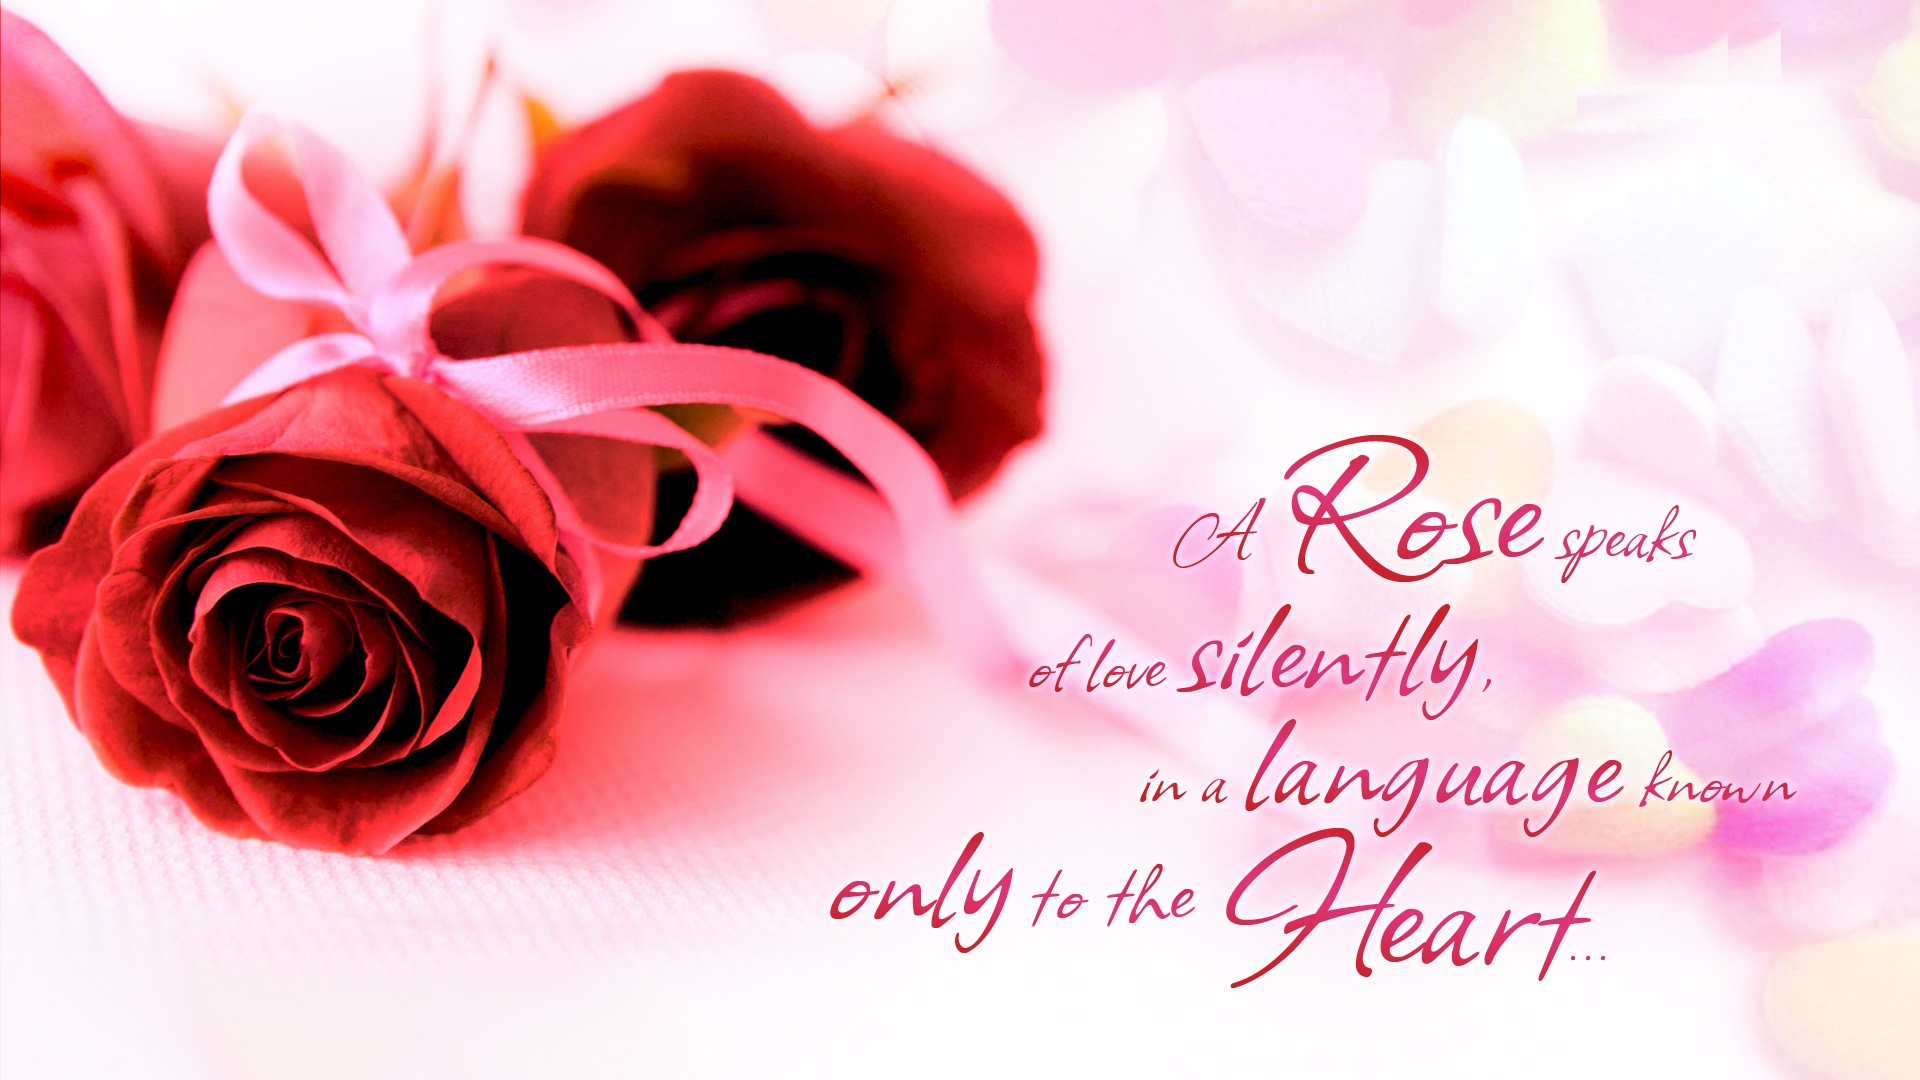 Happy Rose Day Images 2021